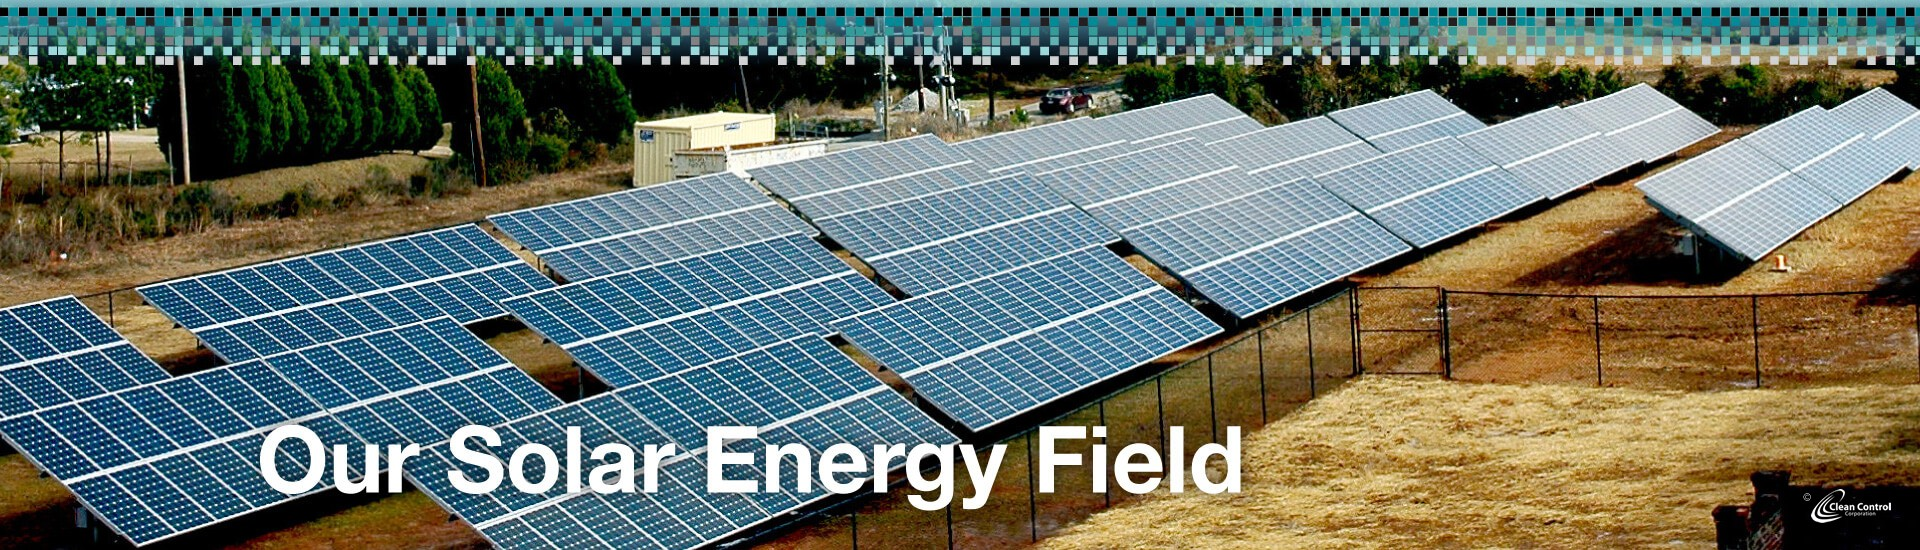 Our Solar Energy Field